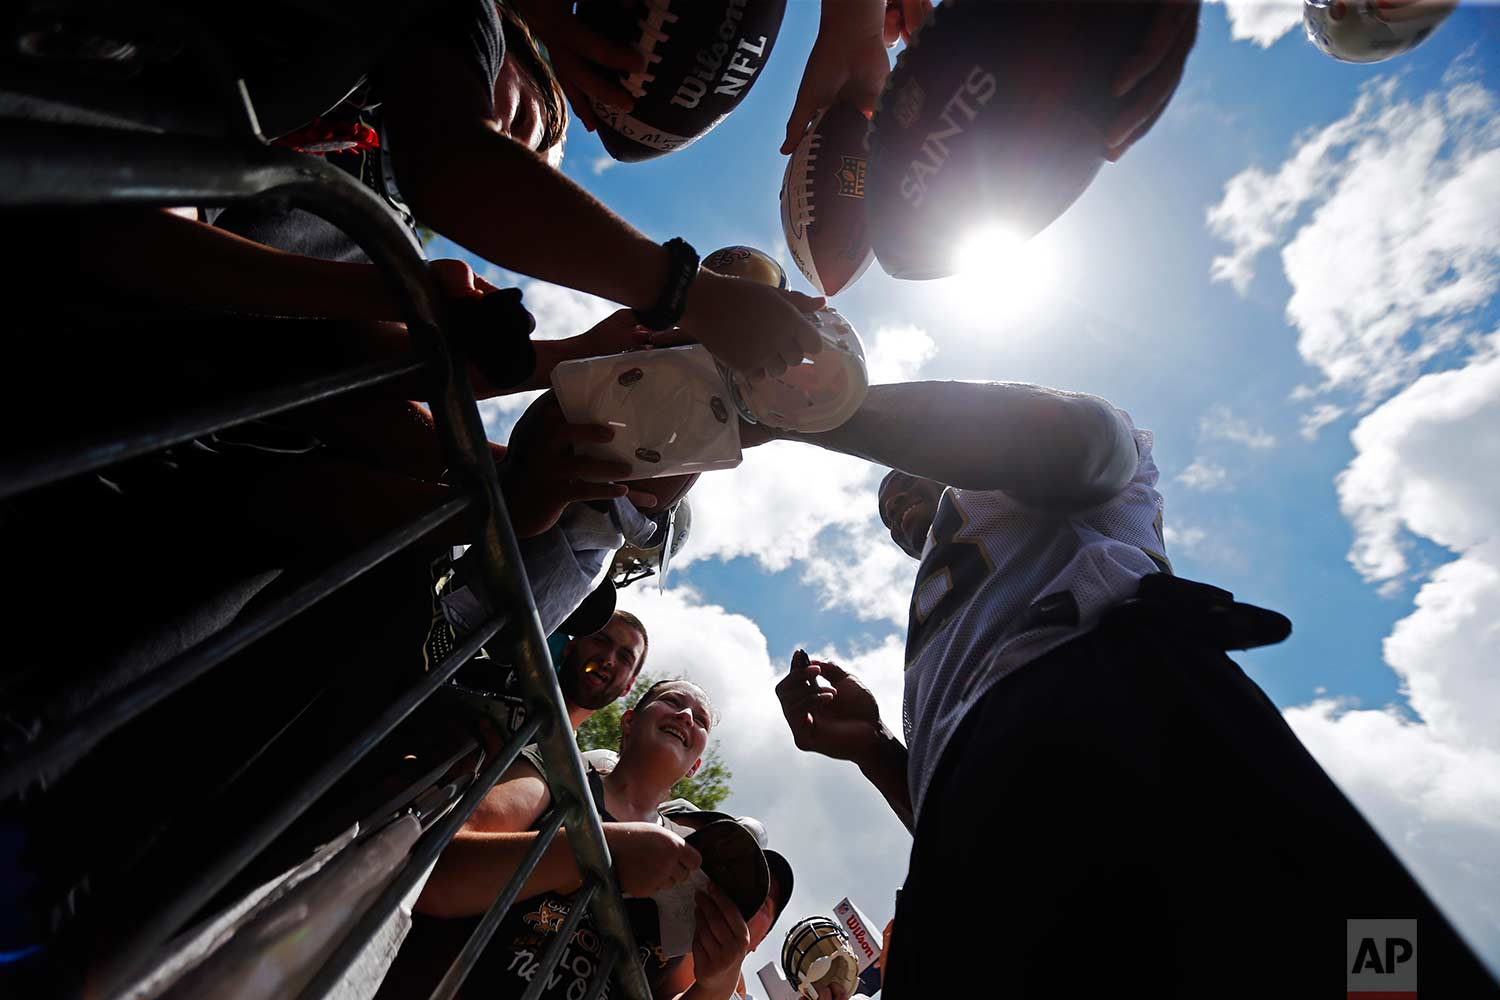 New Orleans Saints running back Adrian Peterson (28) signs autographs at the conclusion of NFL football practice in Metairie, La., Thursday, June 15, 2017. (AP Photo/Gerald Herbert)